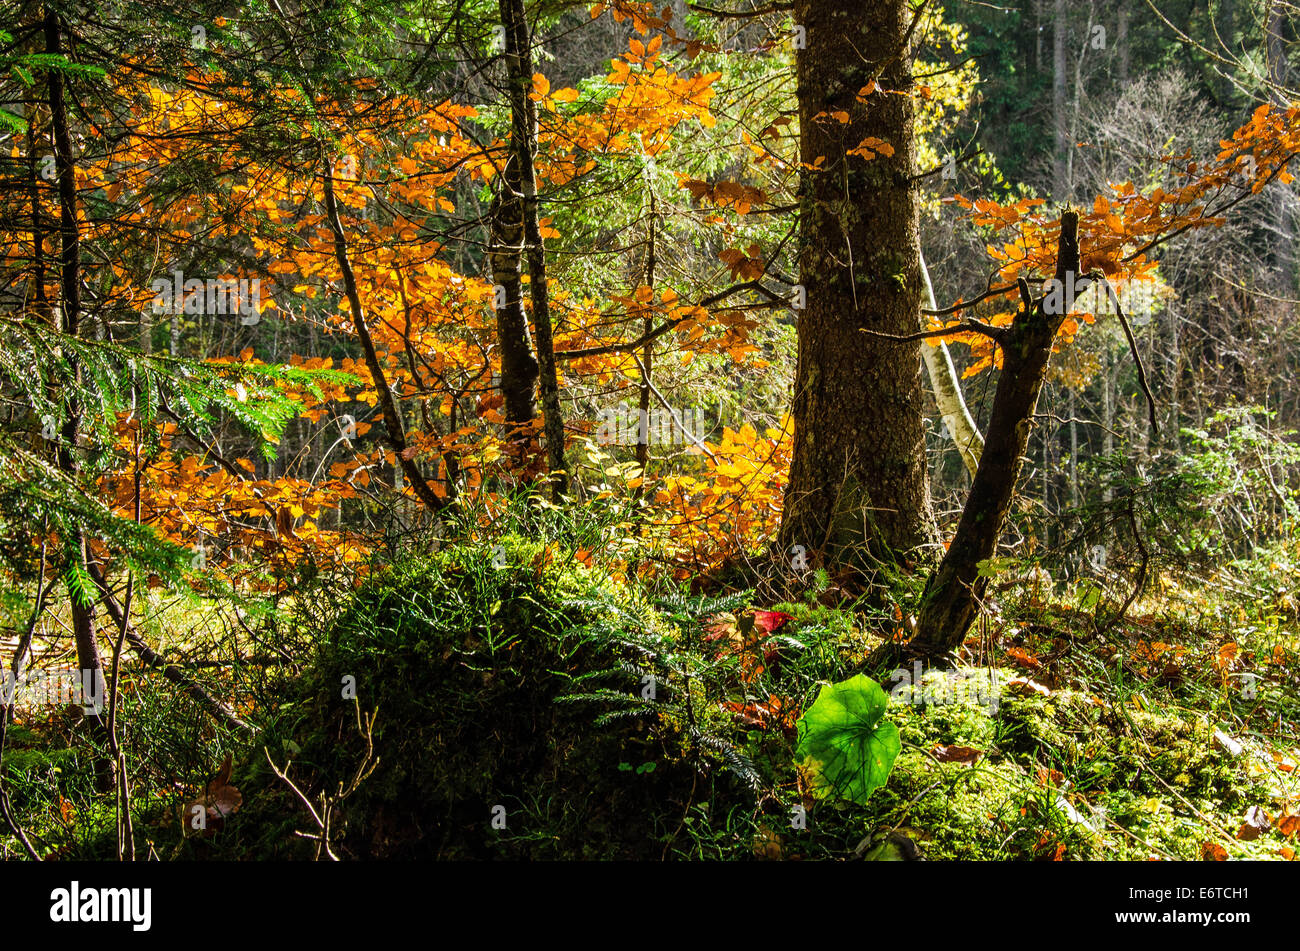 orest in an Alpine valley autumn nature left untouched - Stock Image